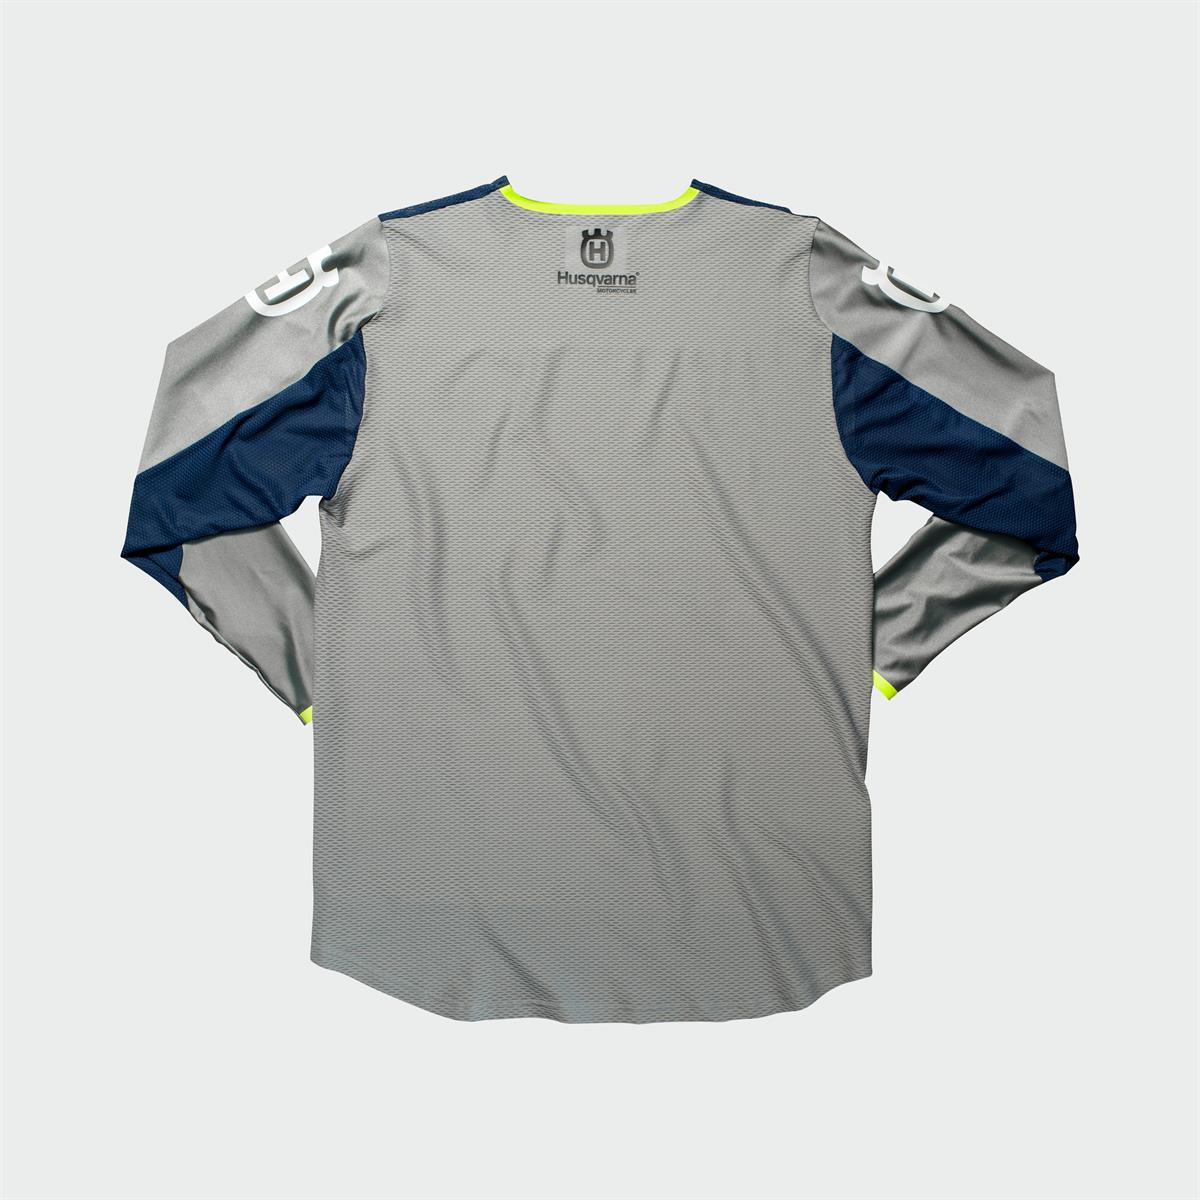 Husqvarna Functional Clothing - RAILED SHIRT GREY - back